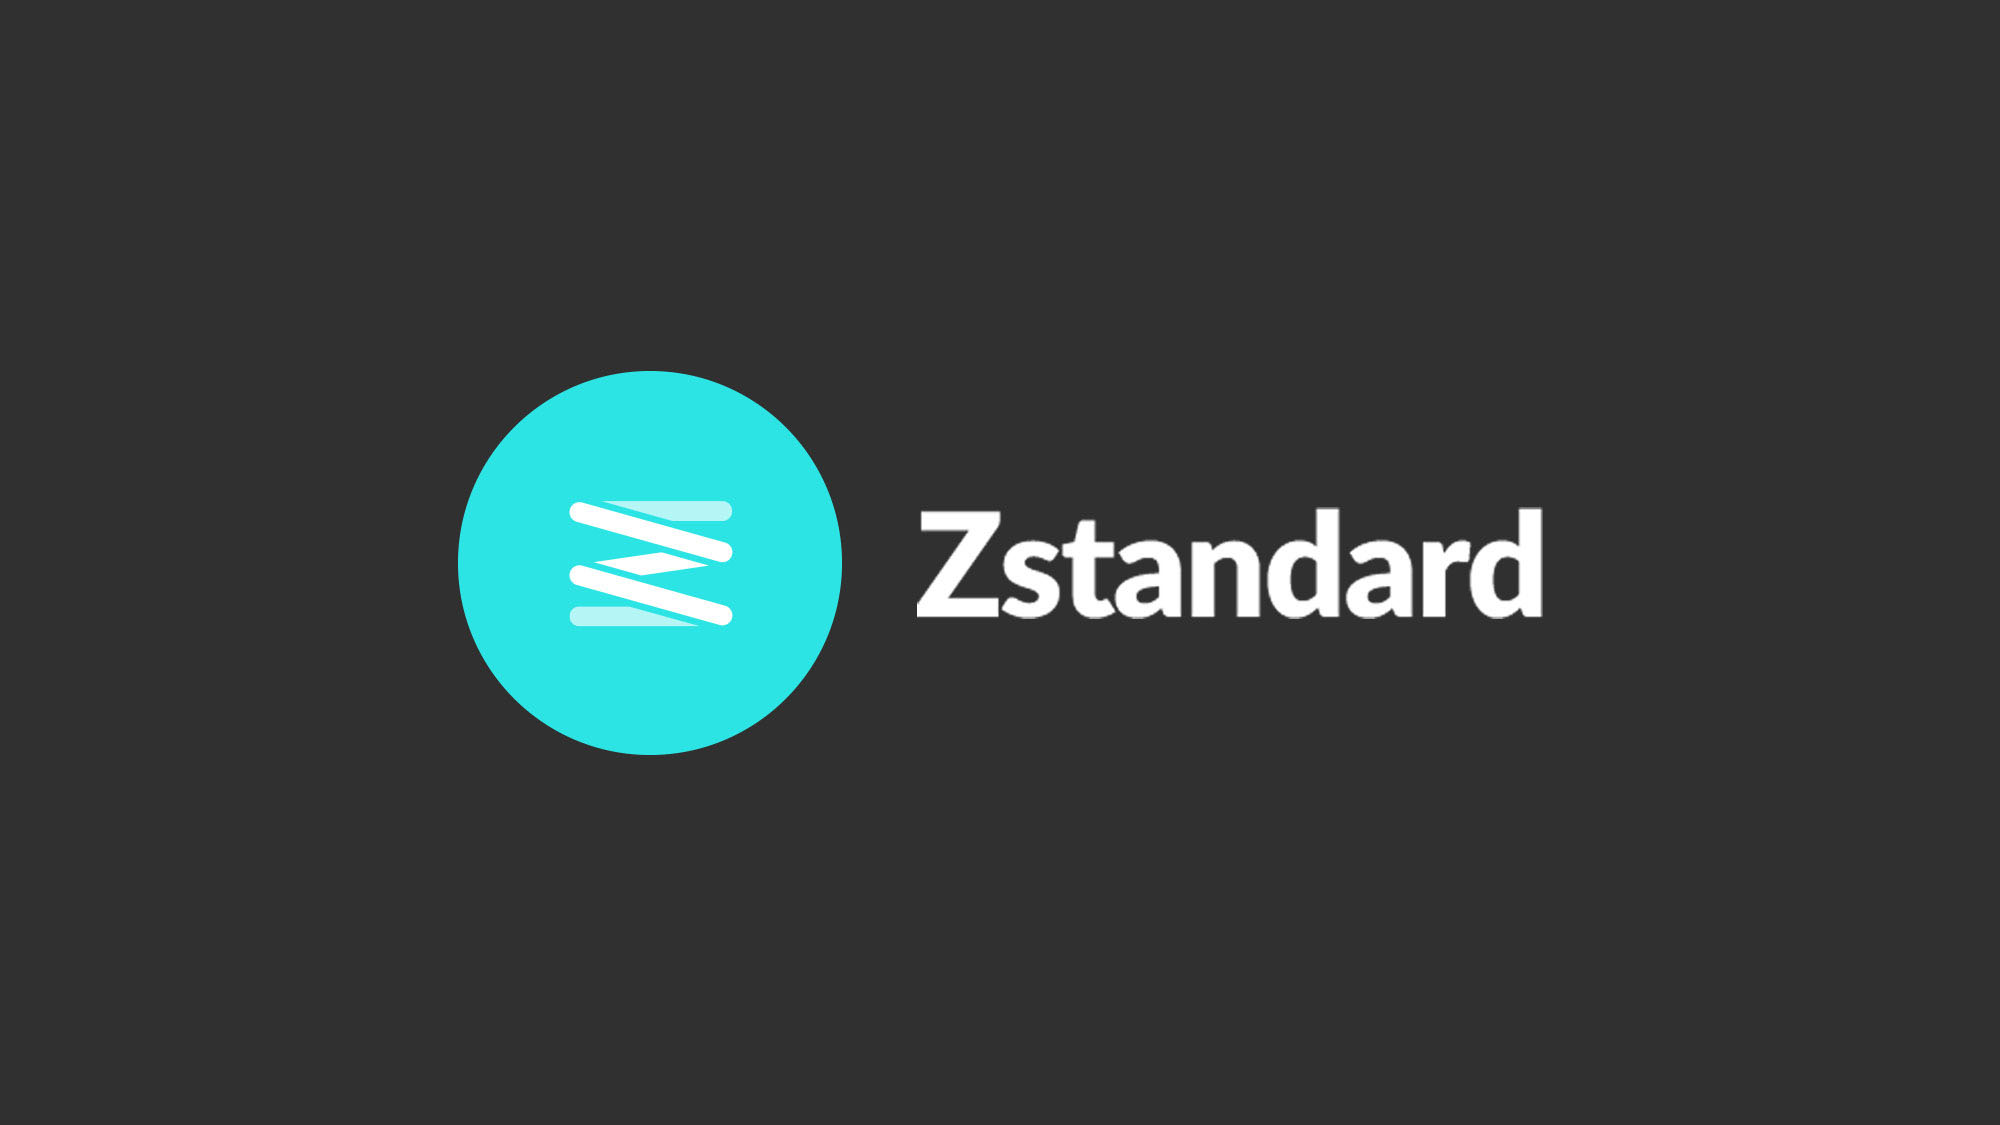 Zstandard: How Facebook increased compression speed - Facebook Code